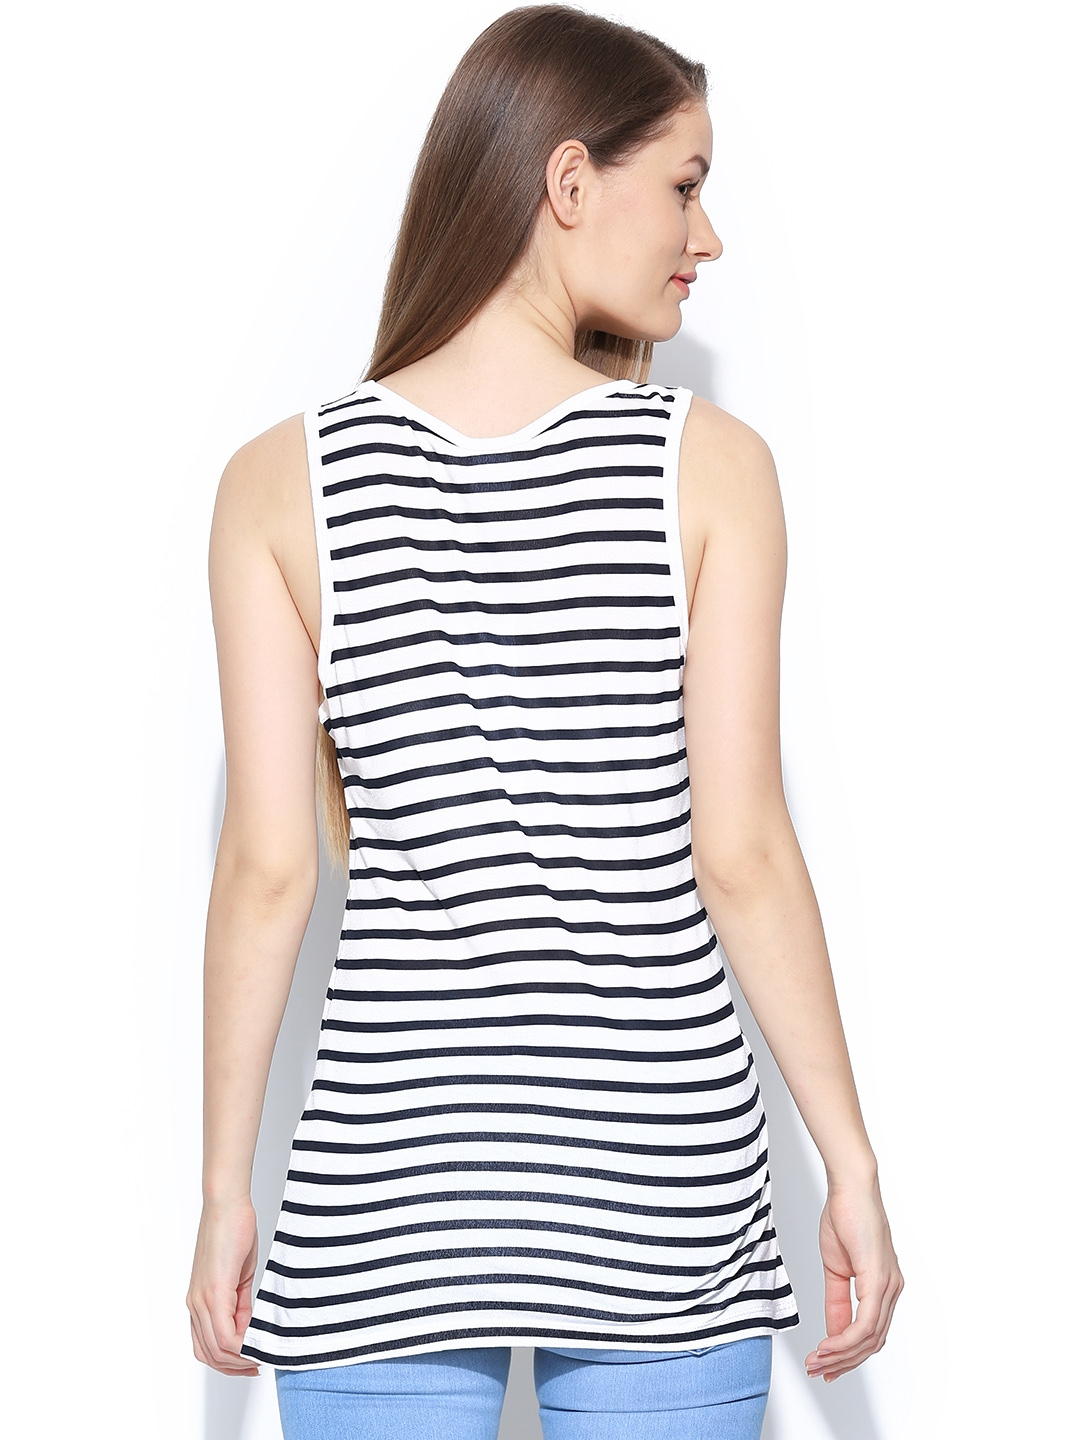 """All Fashion Nova models are wearing size small in tops and dresses, and size 1, 3, or 5 in jeans depending on their body type. Most Fashion Nova jeans & dresses have great stretch, please refer to product description for fabric details. Most Fashion Nova bottoms have an inseam of """" depending on the cut and style."""